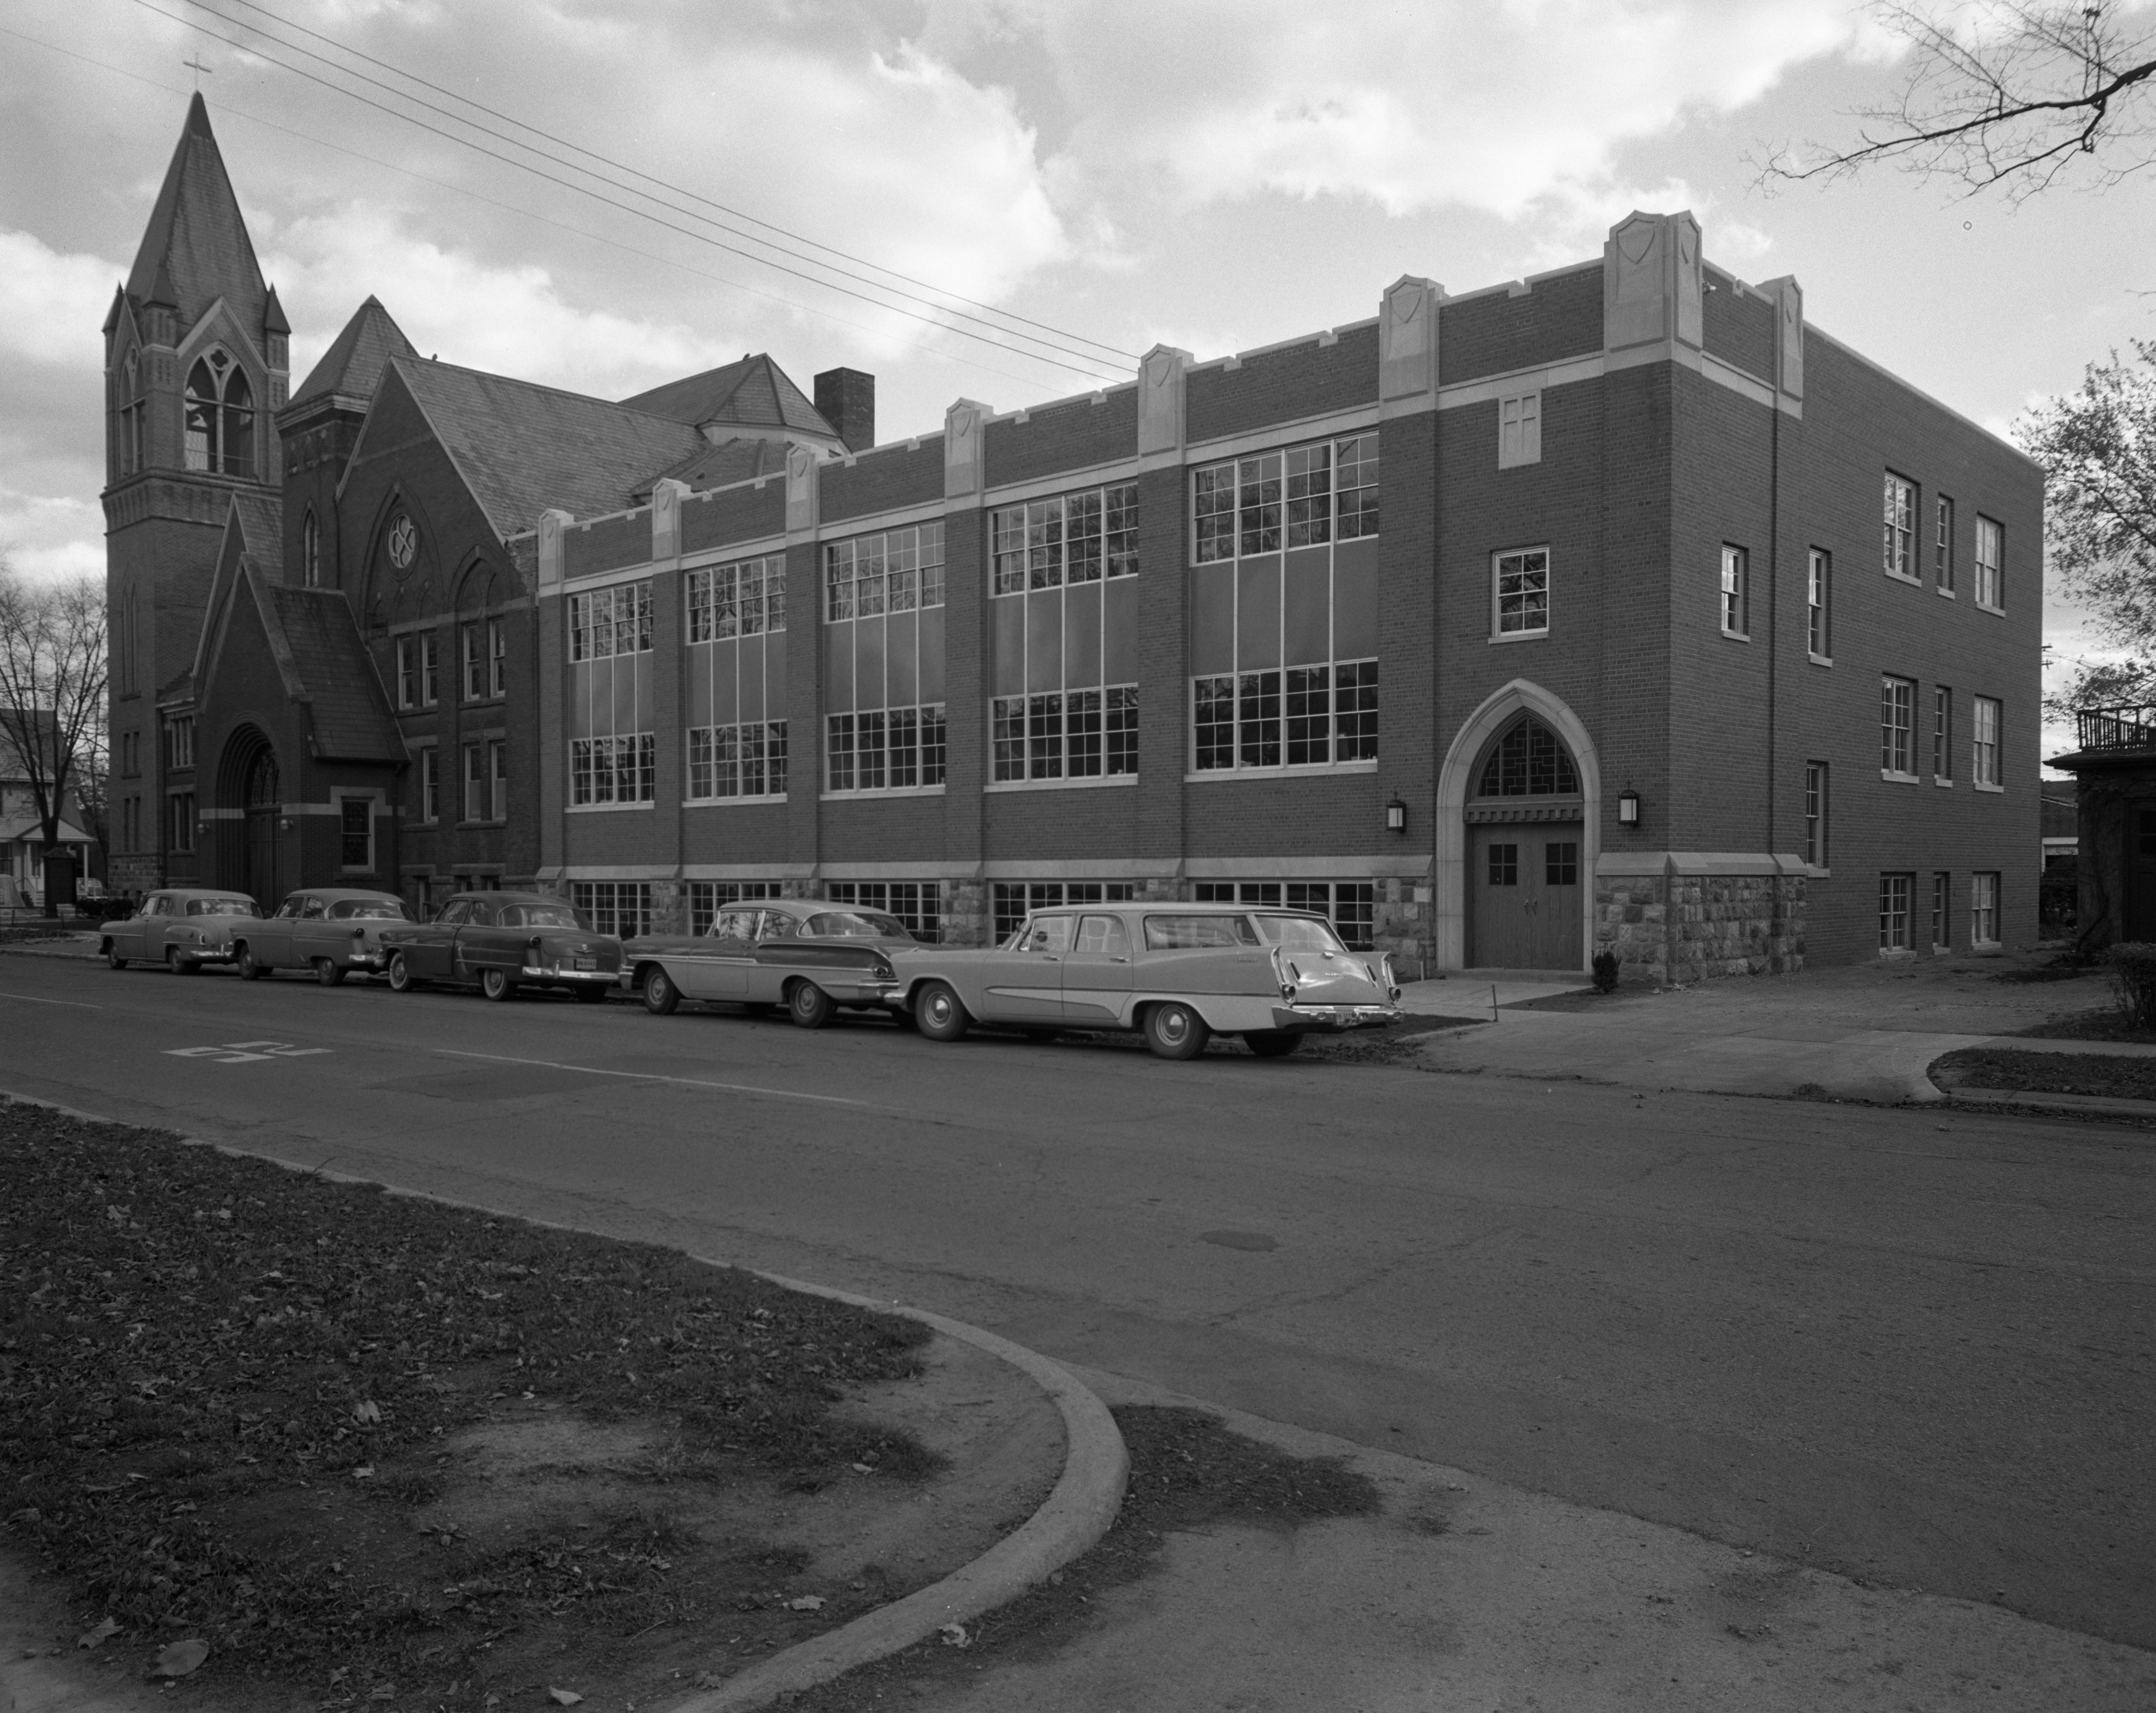 Education Building Addition to Ypsilanti Methodist Church, November 1958 image